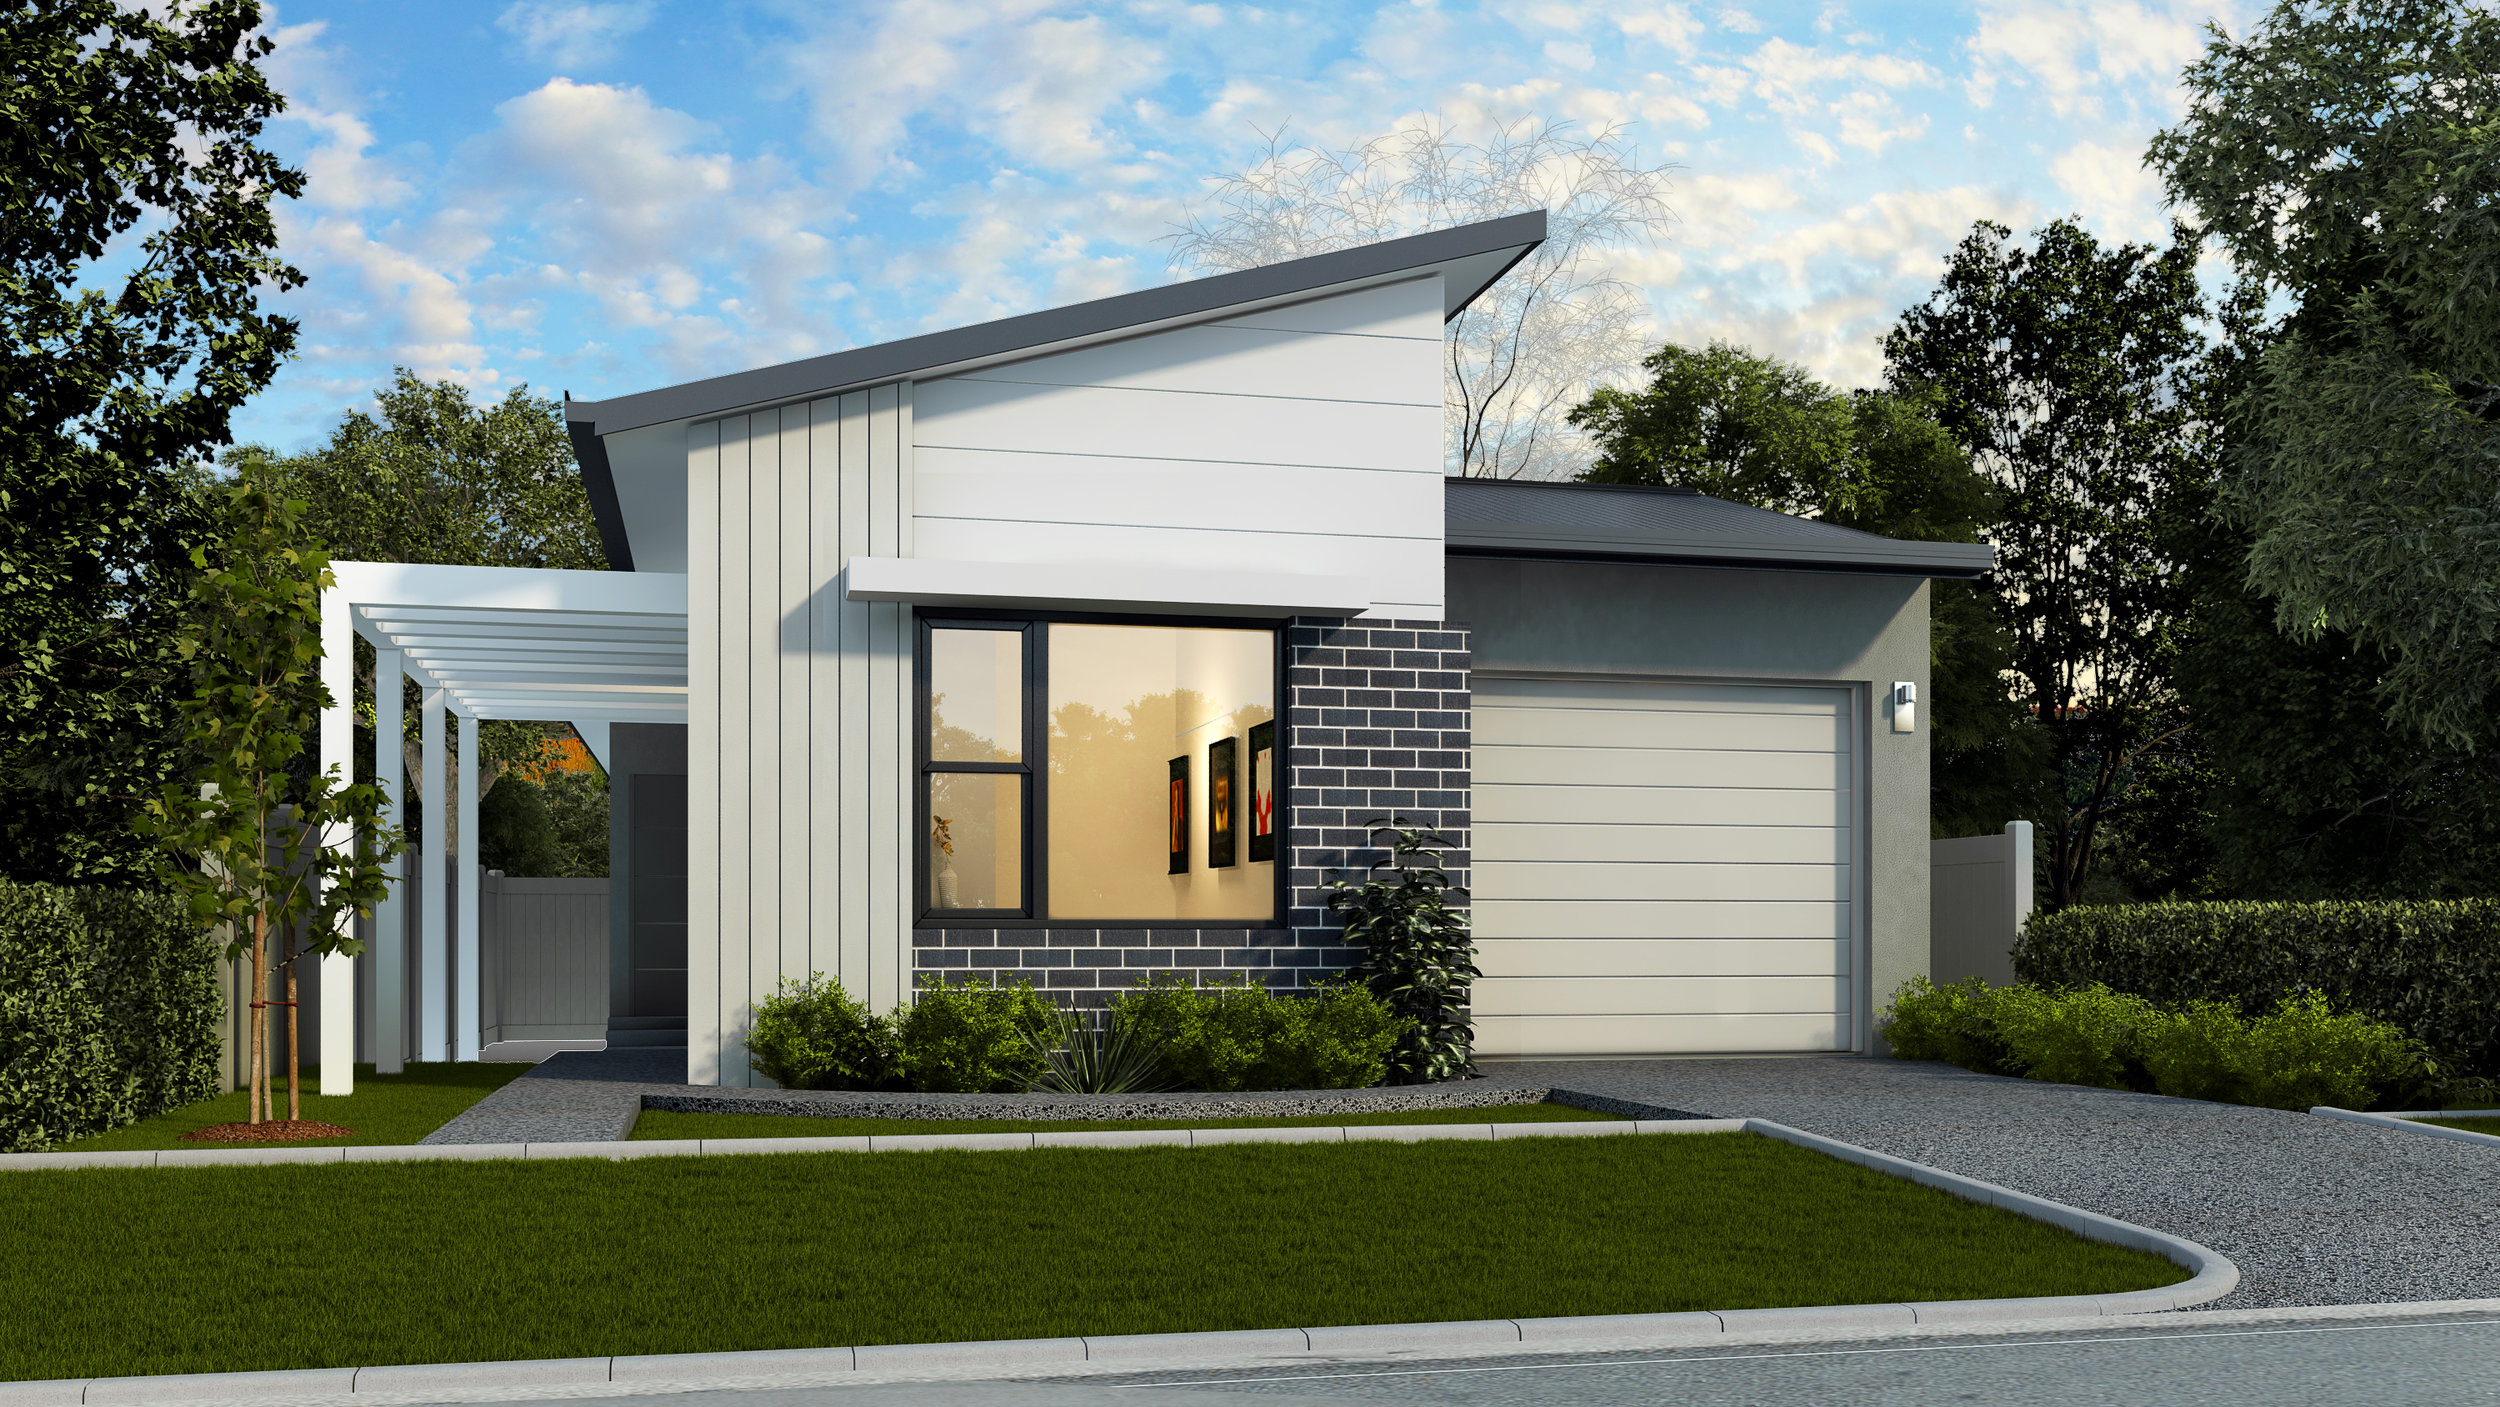 The Lexicon - 3 Bed | 2 Bath | 2 Car Garage10m Traditional Lots